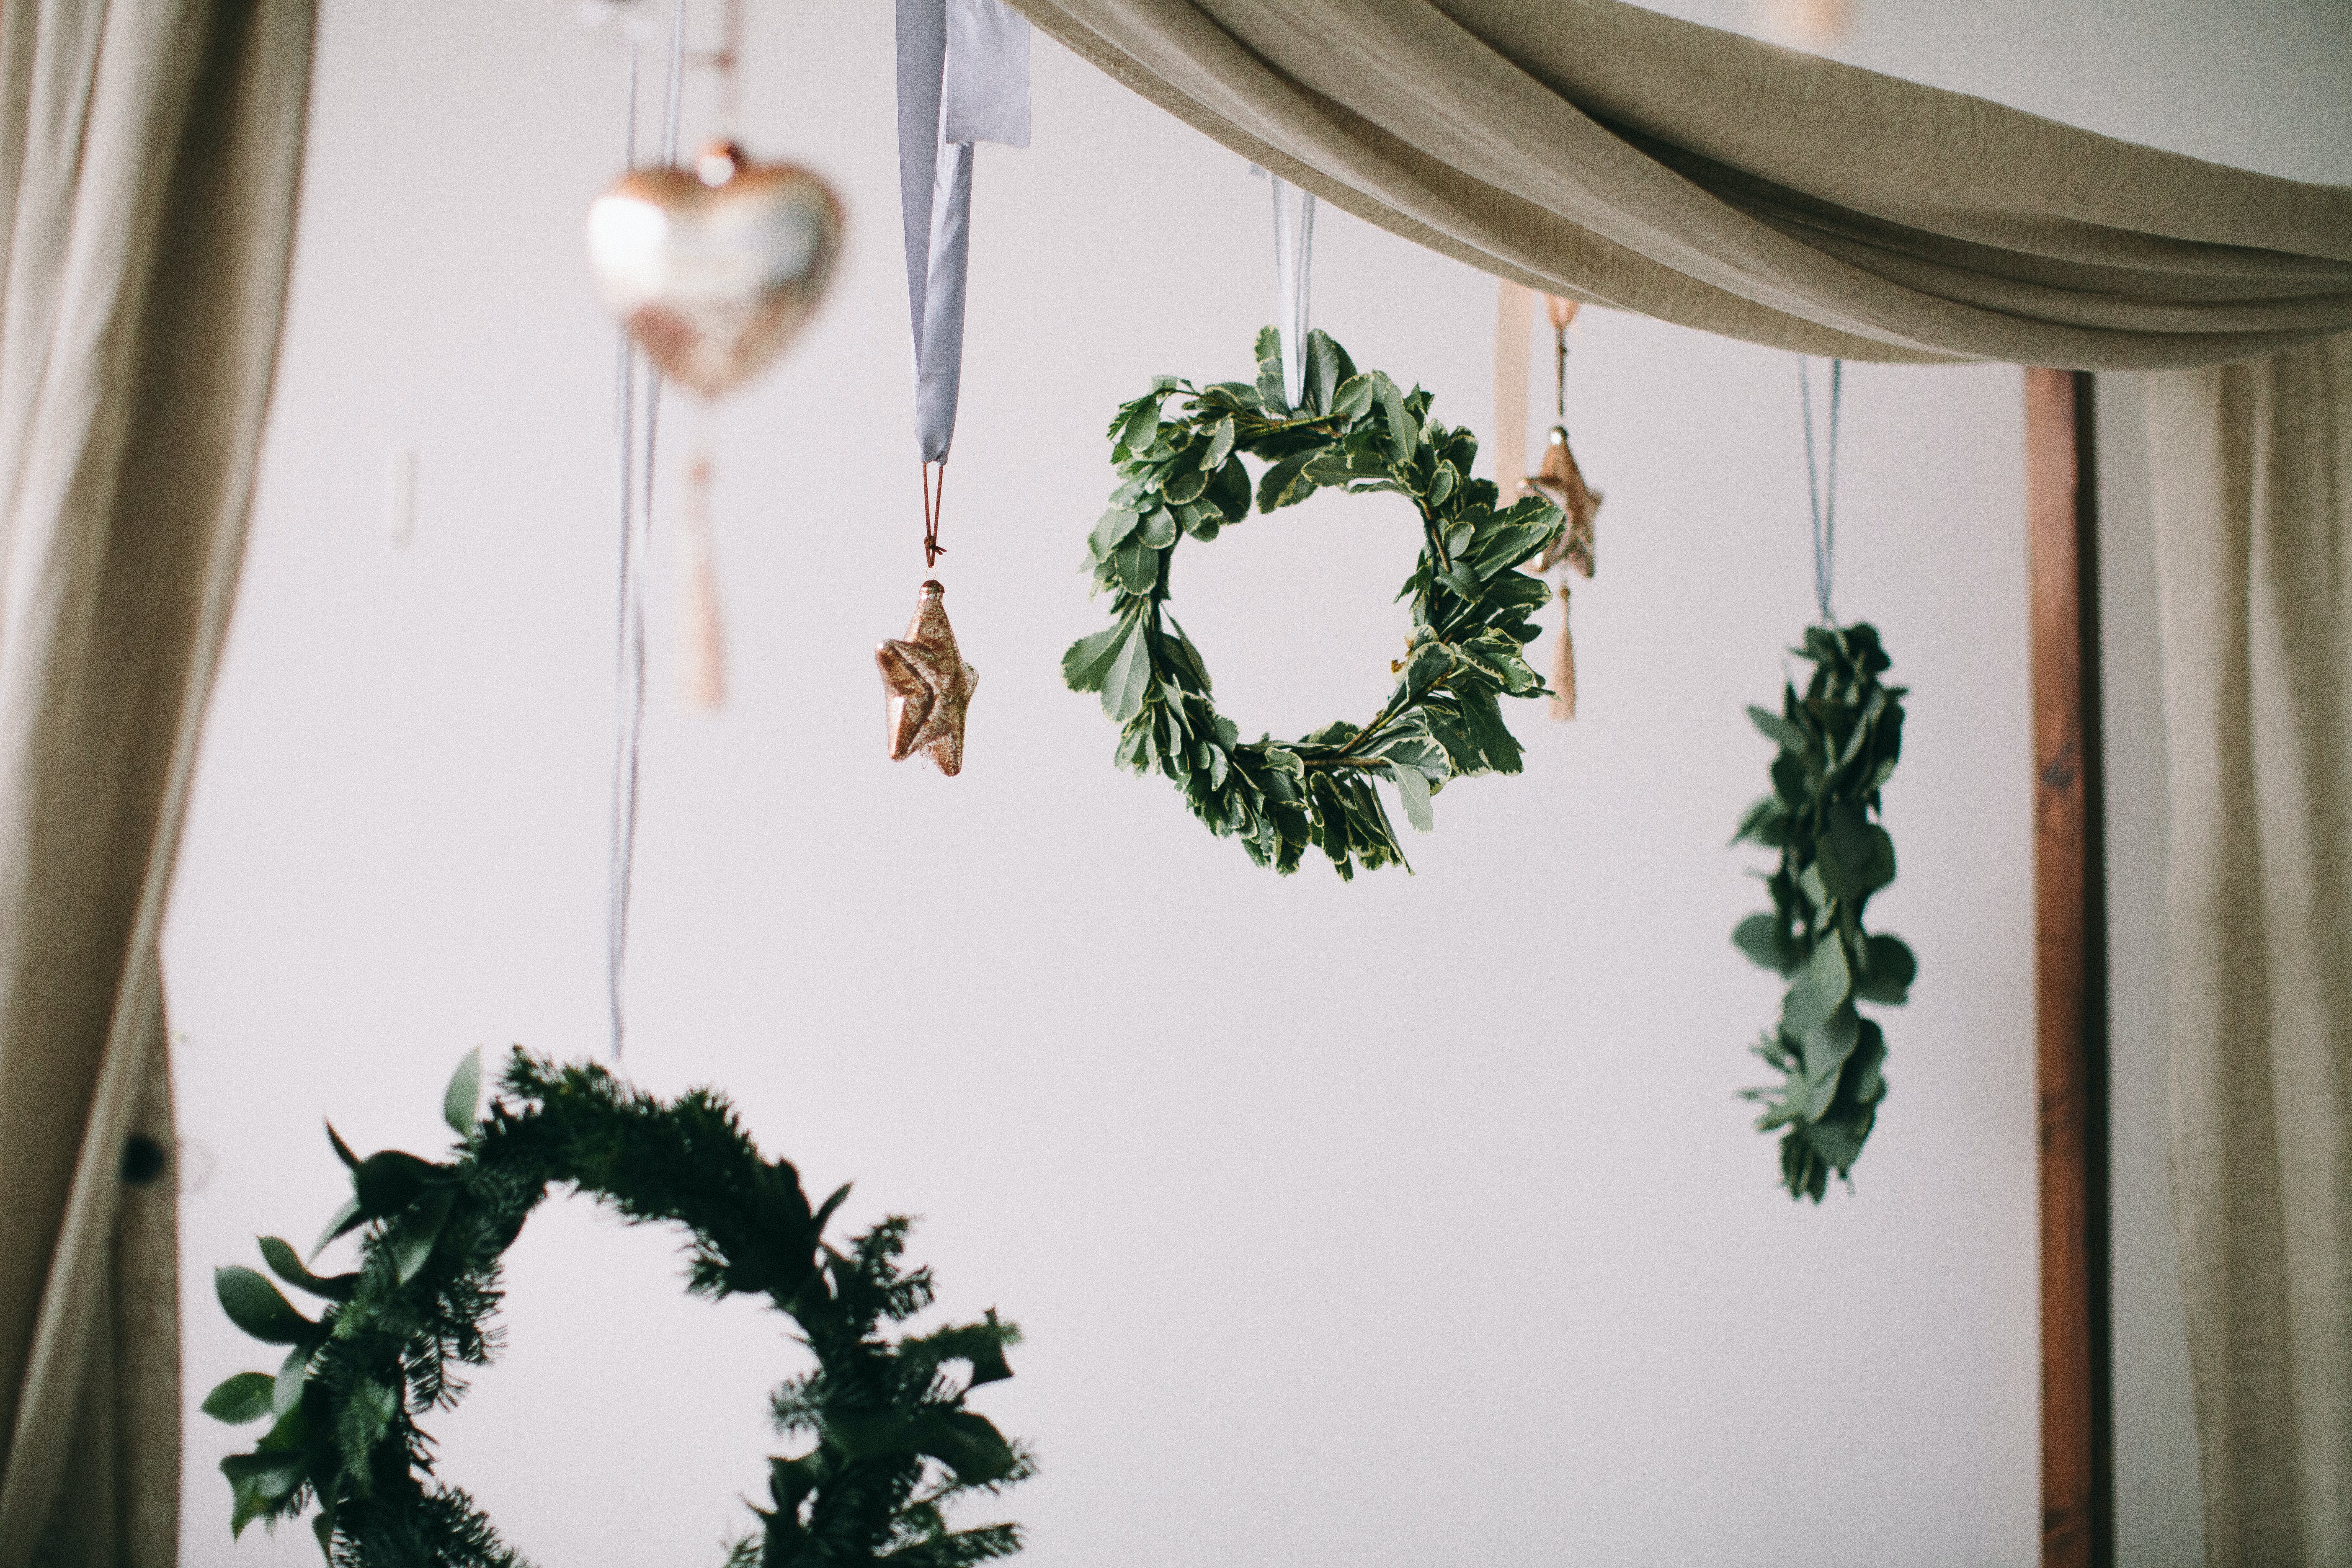 Green Wreath Hanging in Wall